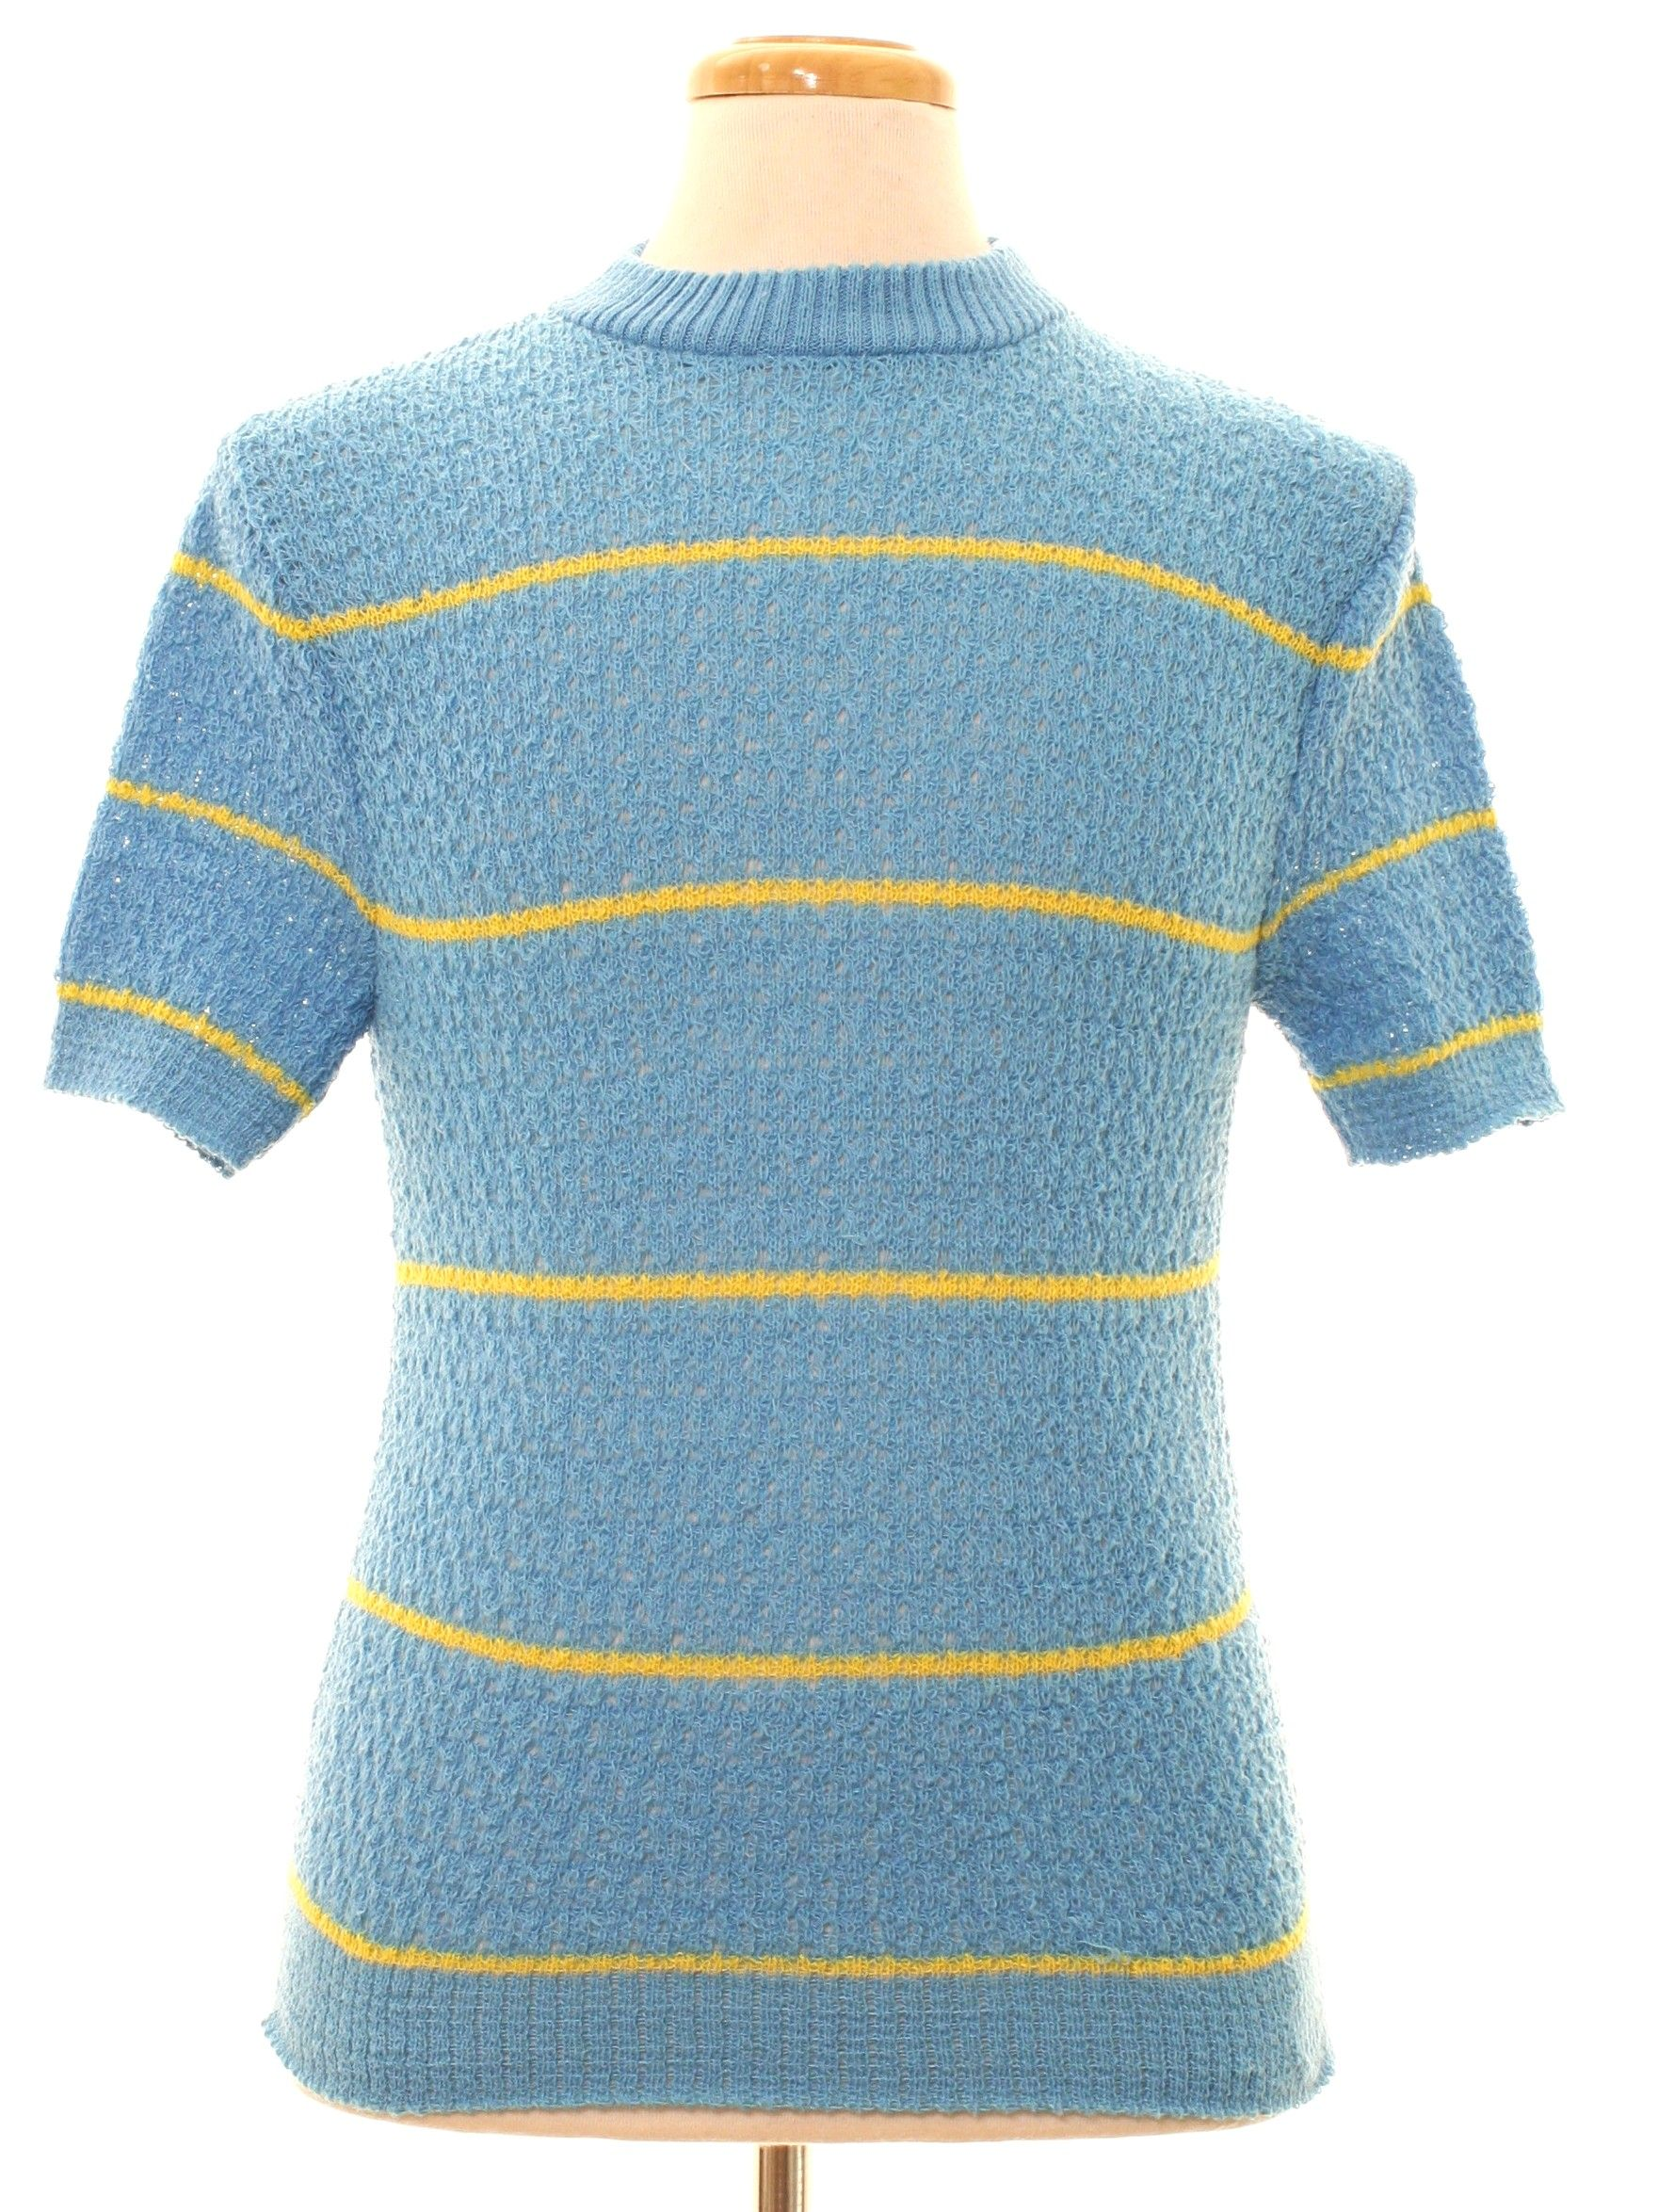 Birchwood Knitwear Sixties Vintage Knit Shirt: 60s -Birchwood ...